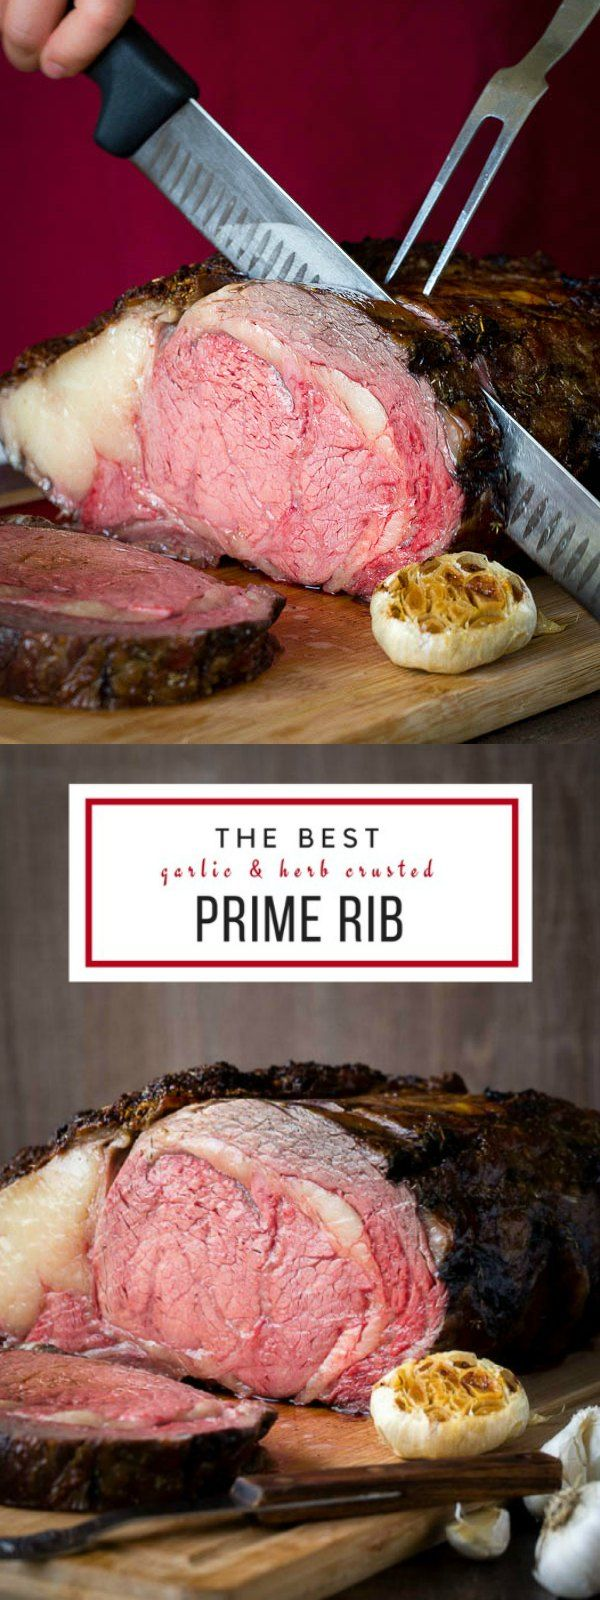 Evenly cooked boneless prime rib with an amazing crispy crust - guaranteed! #primerib #howtoroastprimerib #bonelessprimerib #christmasdinner via @shineshka